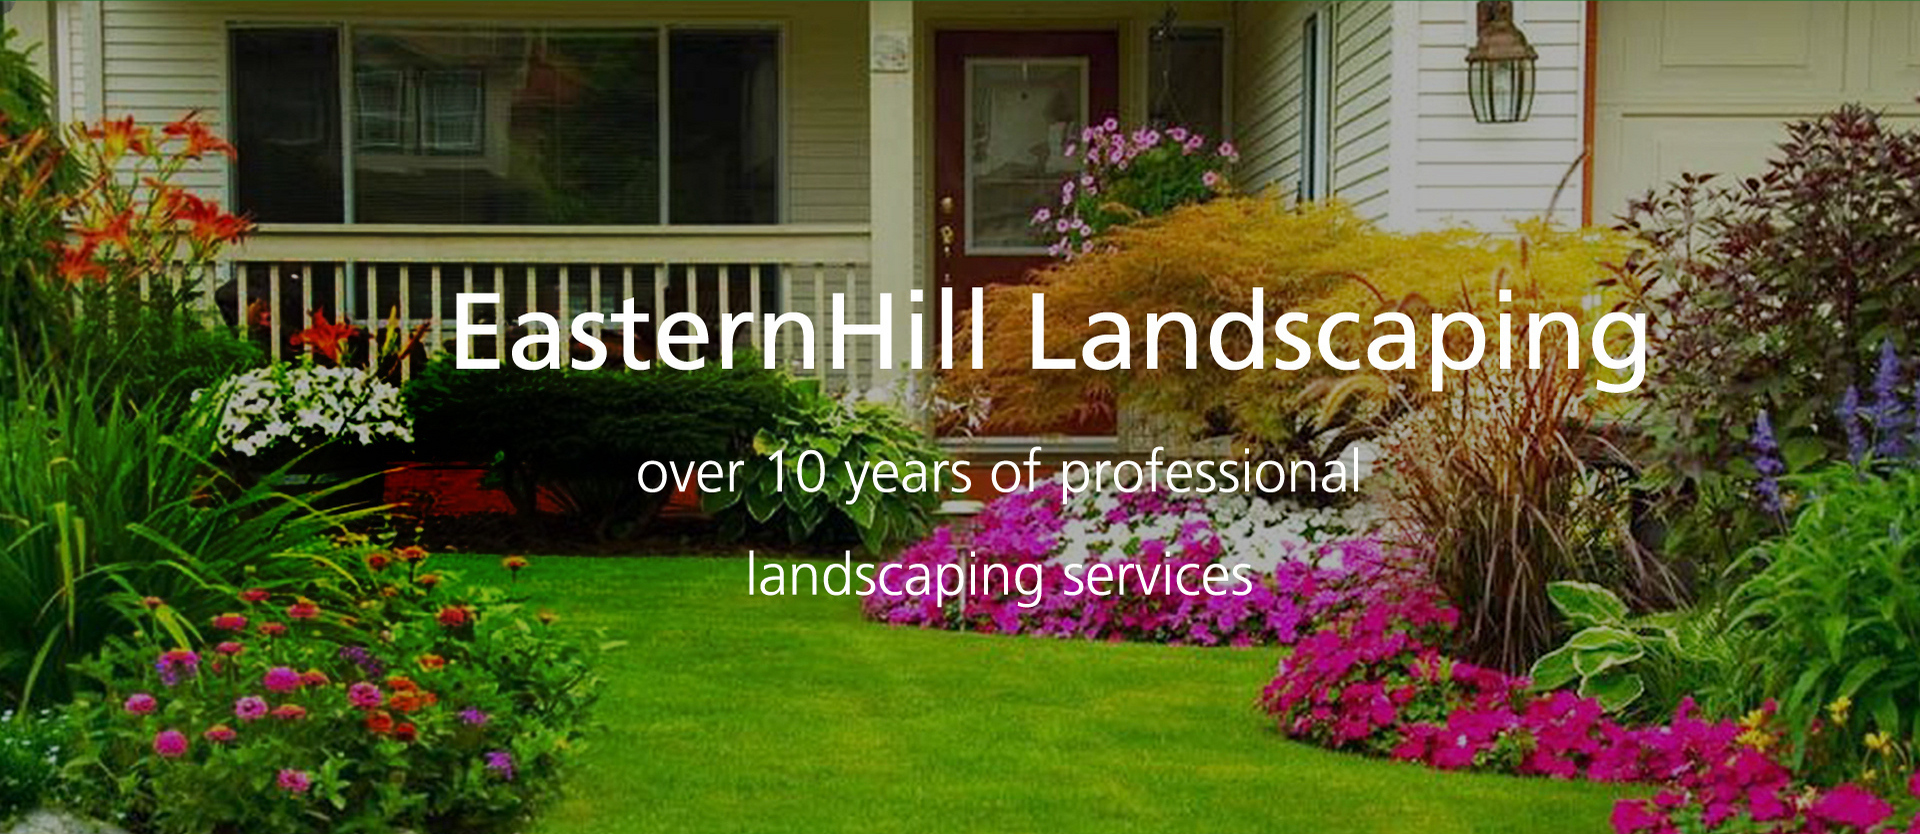 First slide | Eastern Hill Landscaping